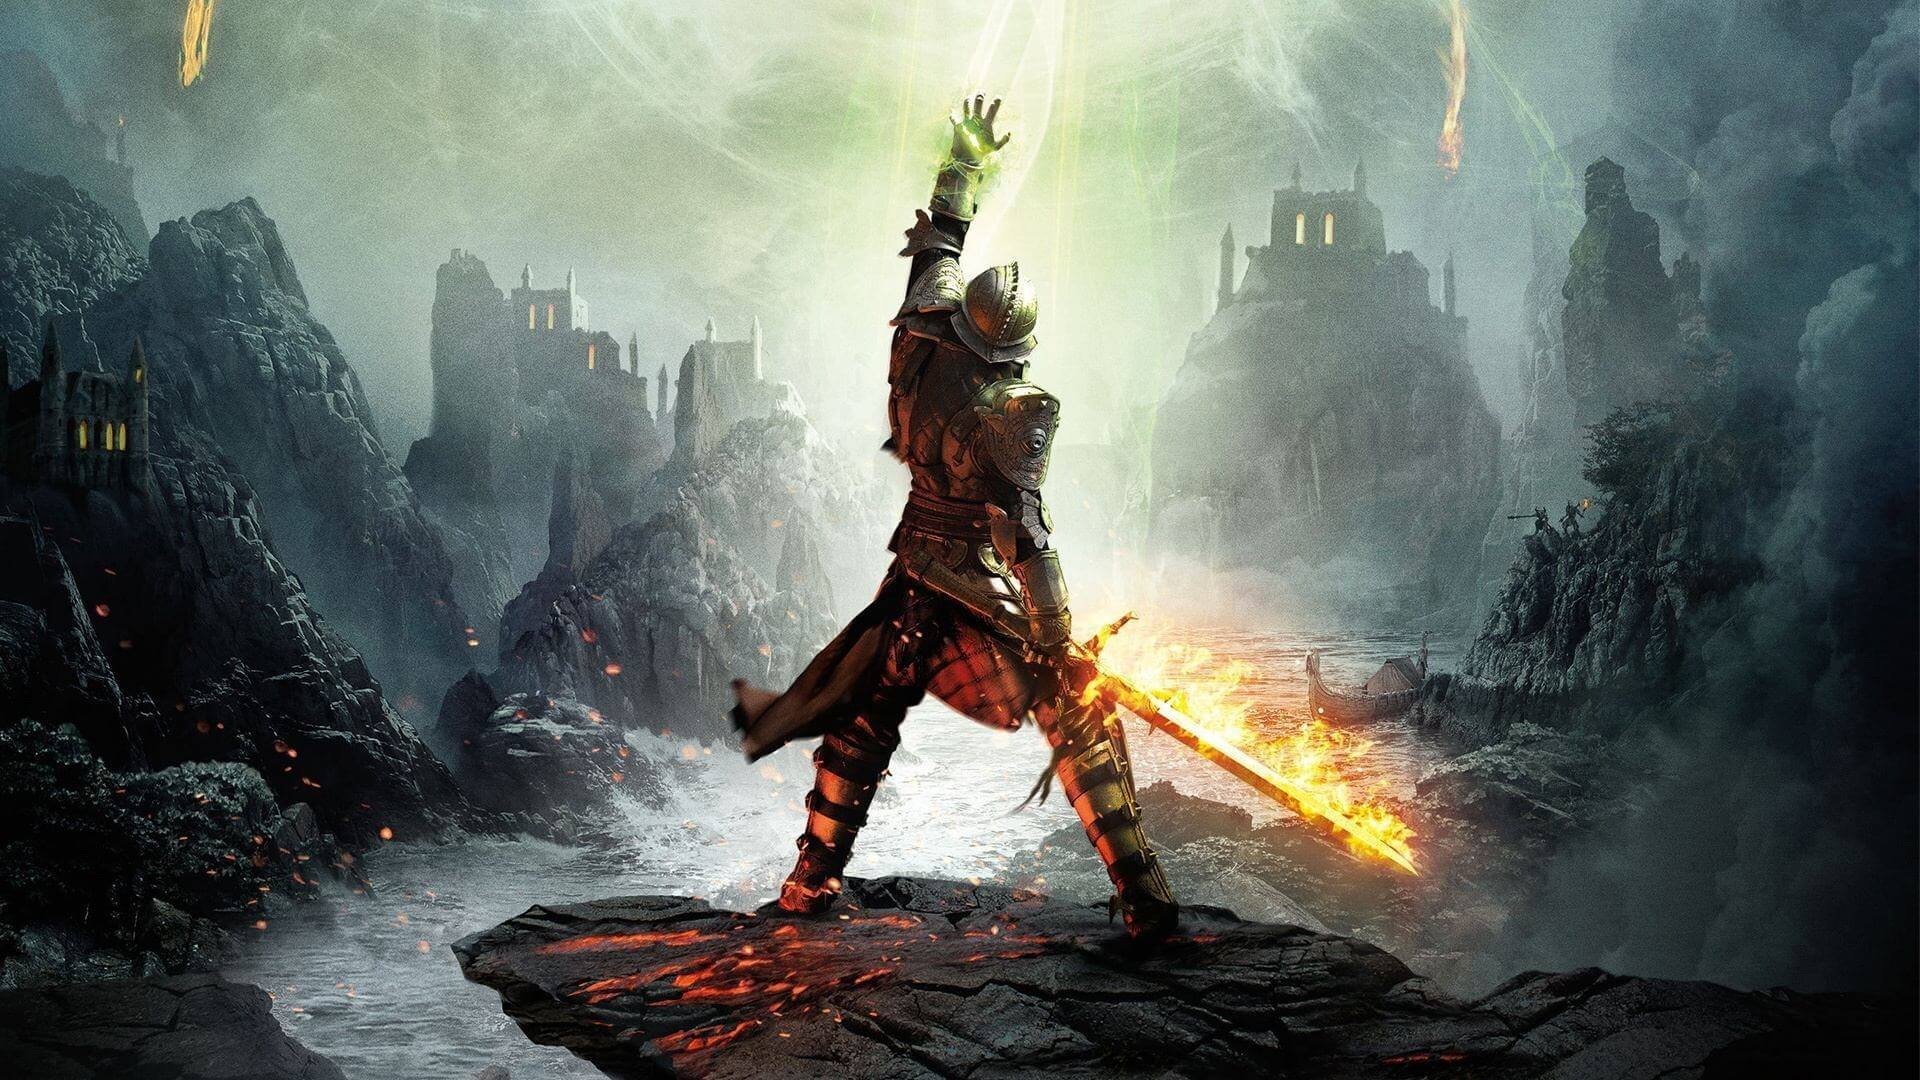 Next Dragon Age game may be announced during The Game Awards